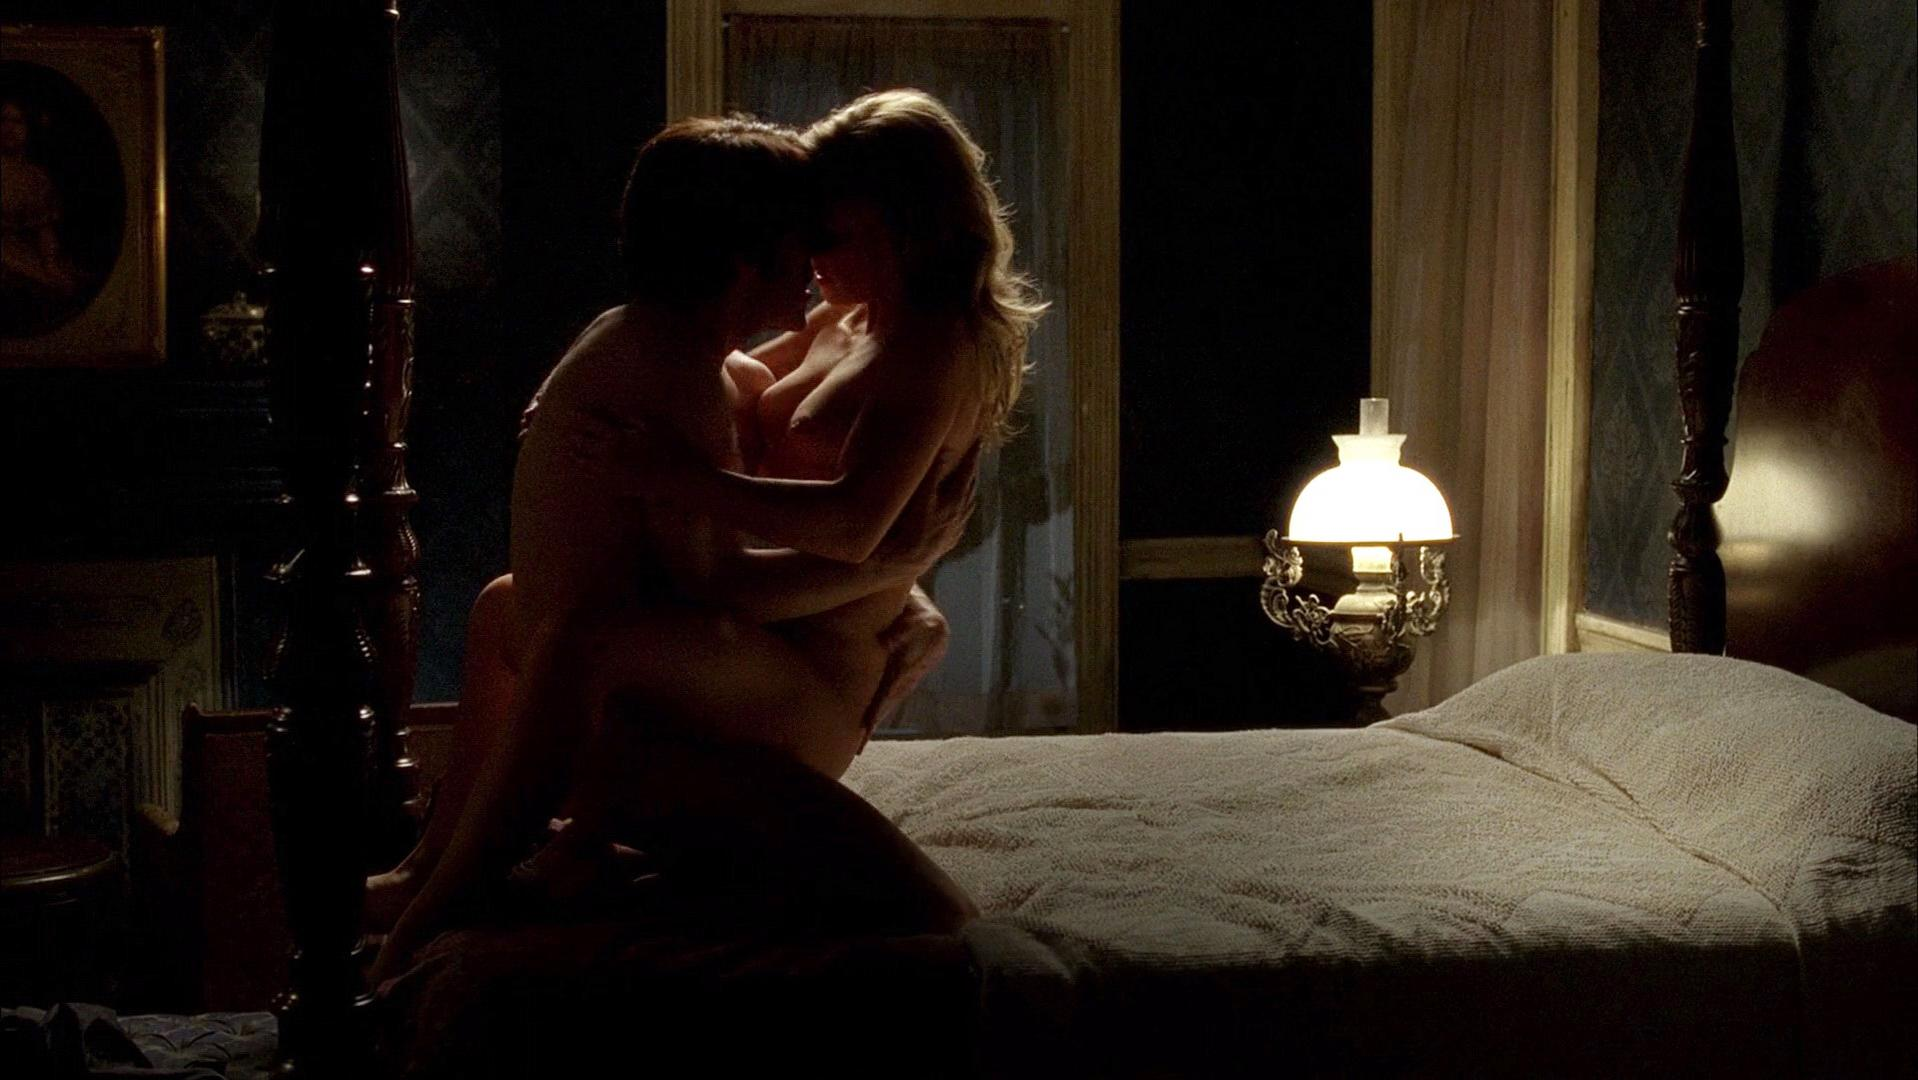 Anna paquin naked, sex scene for tv picture true blood